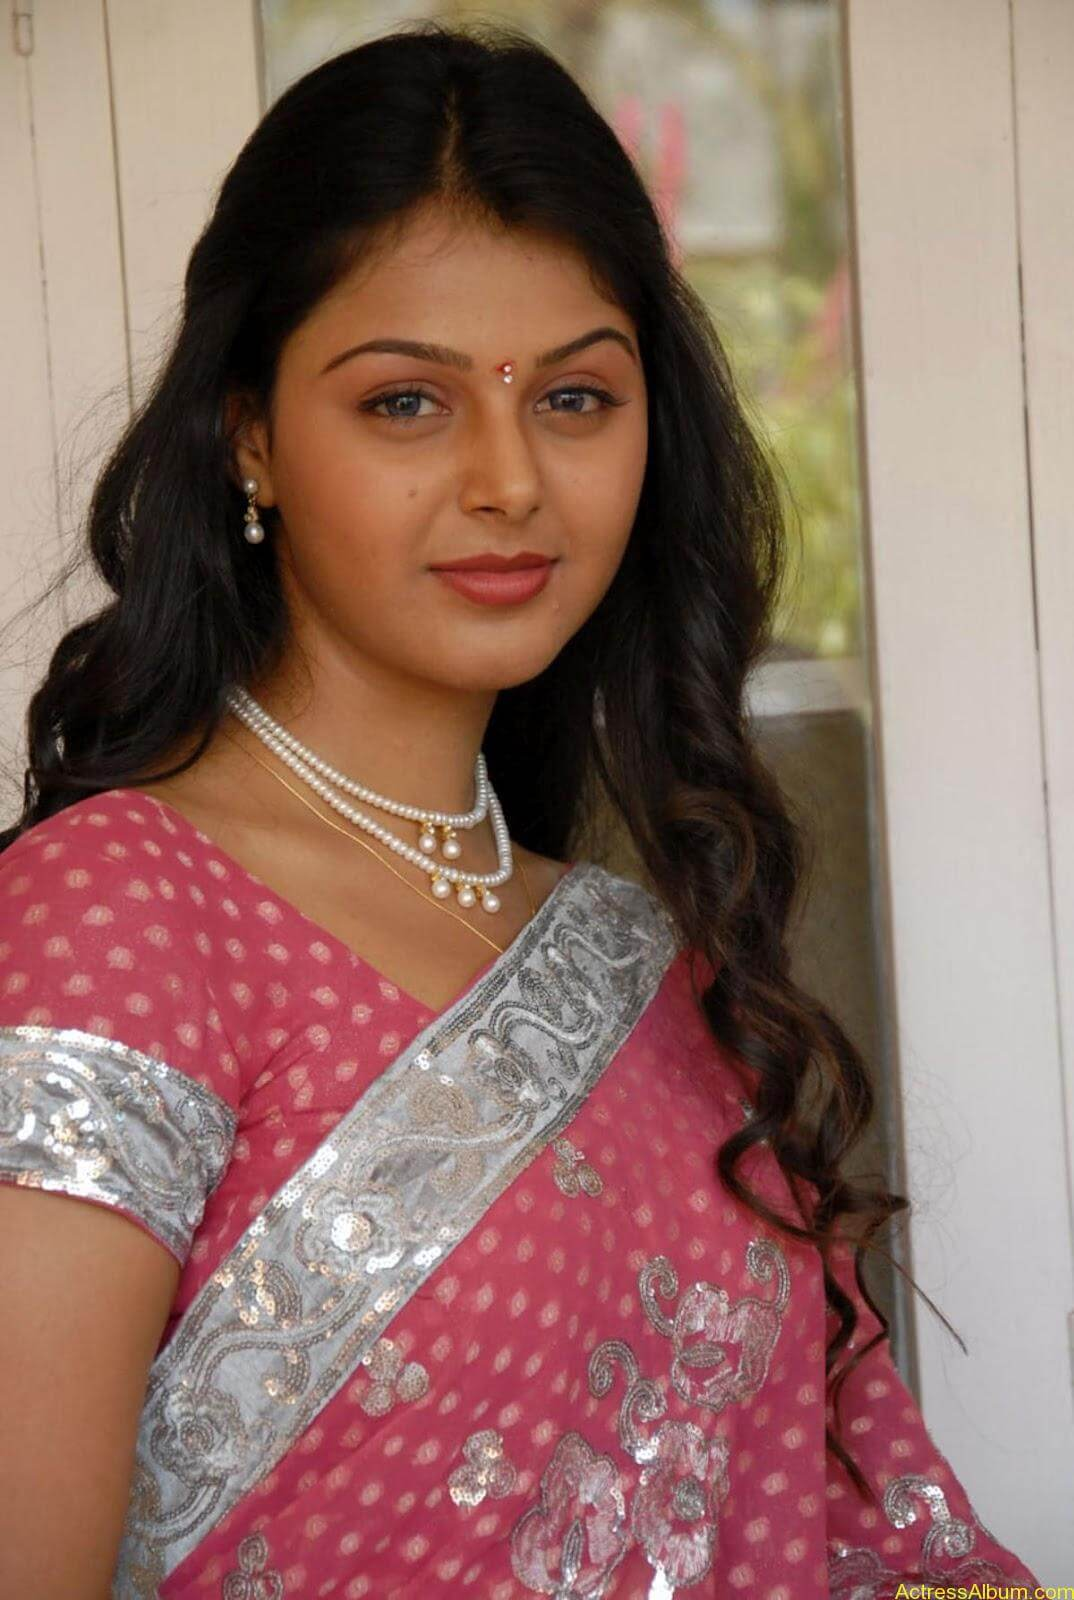 Monal gajjar Hot Saree Stills (9)